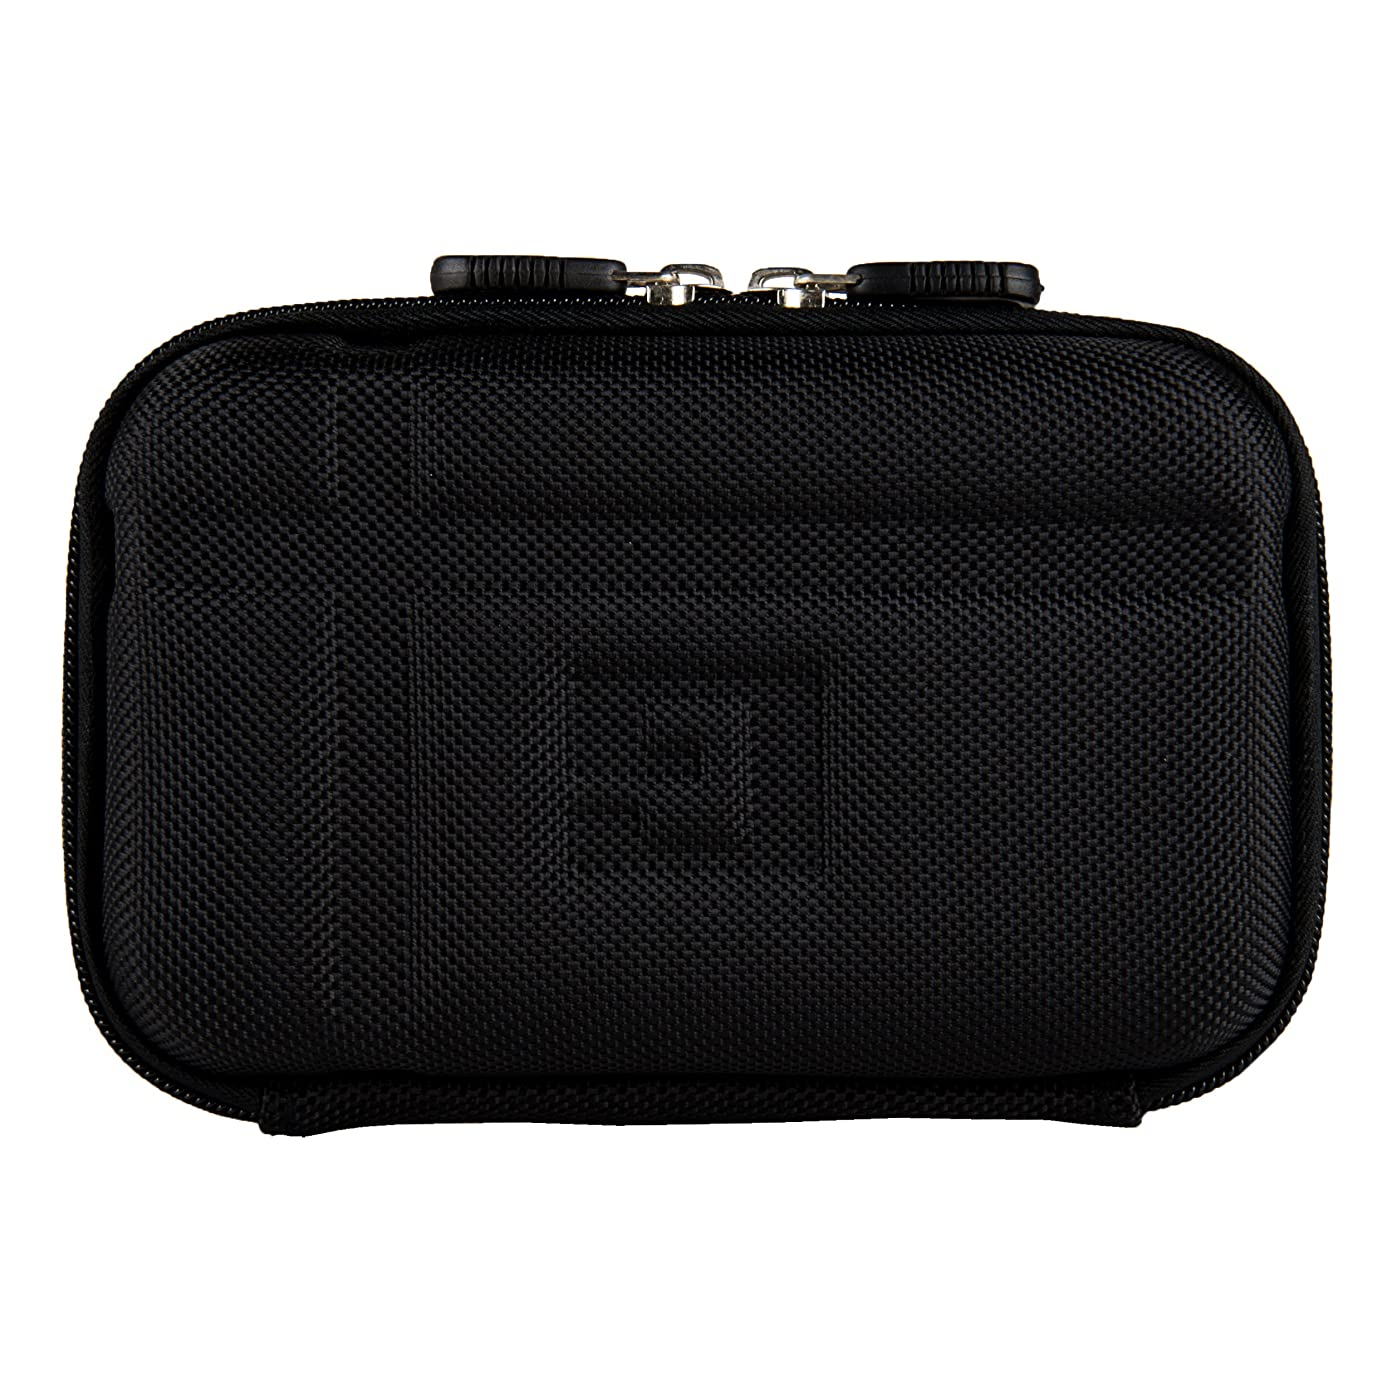 Accessory Pouch With Carabiner, Devices, Cameras, Cords